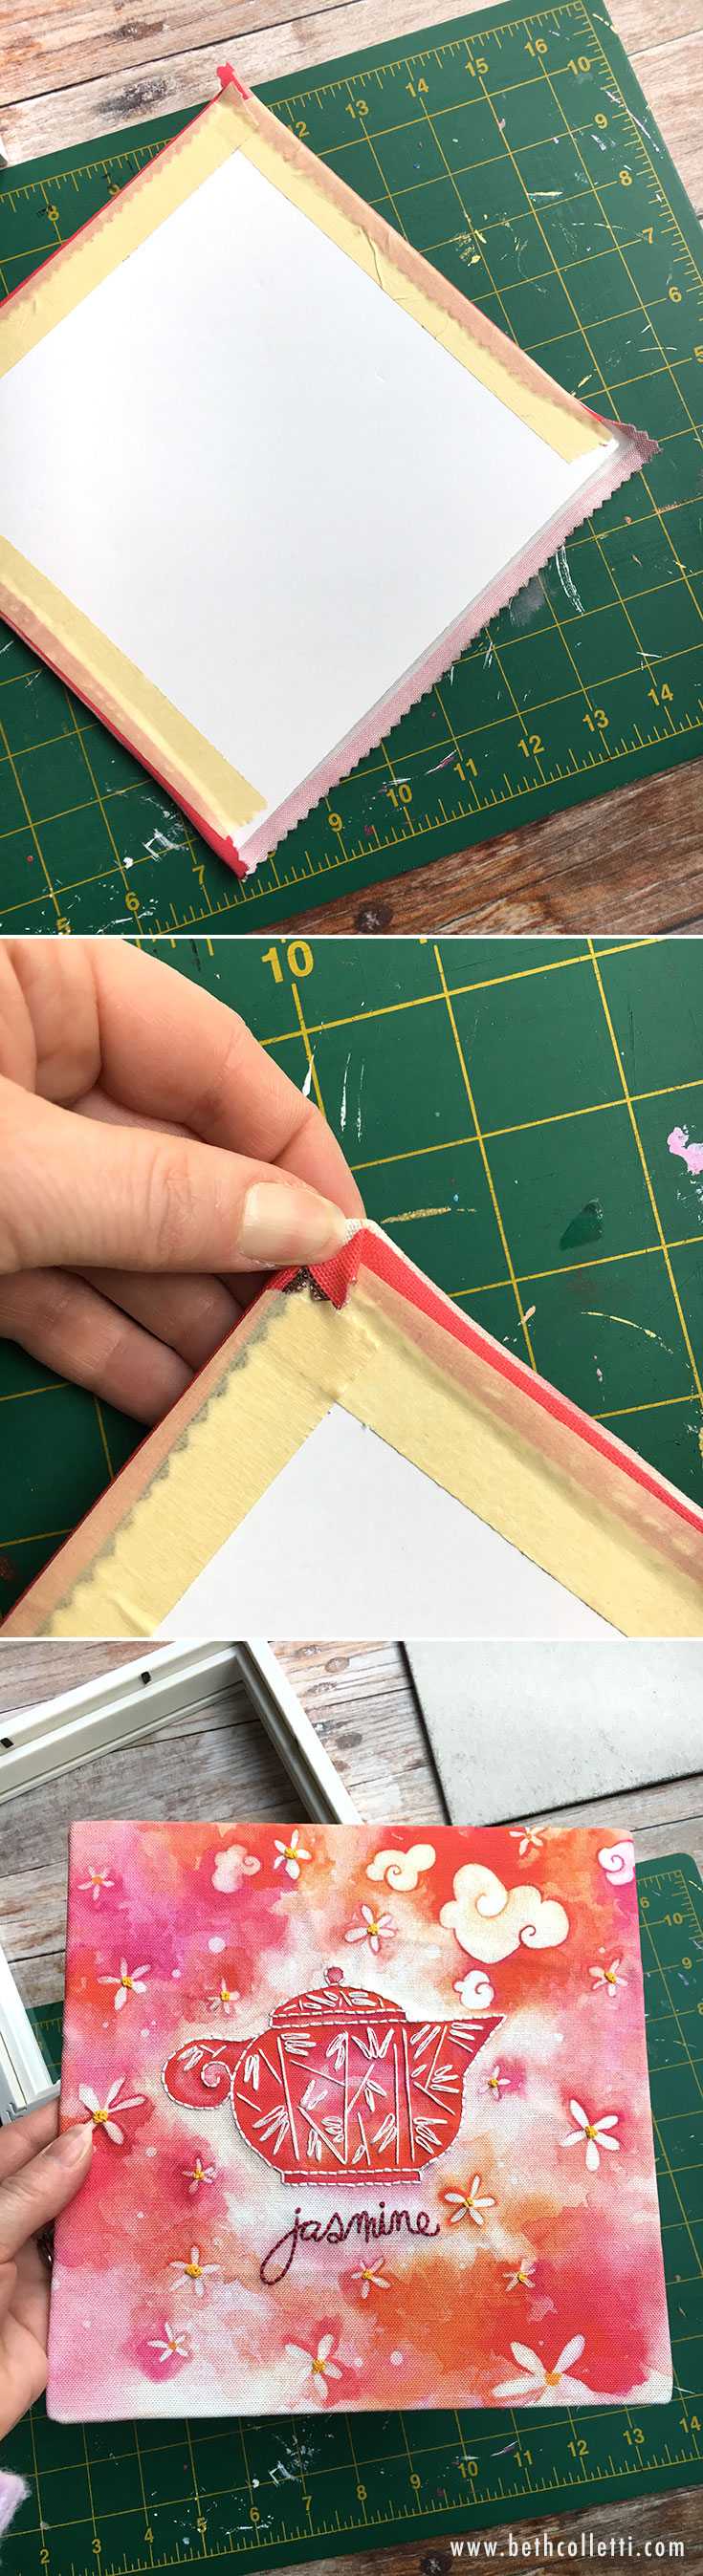 Use masking tape to secure the edges of your embroidery art on the back of the mounting board.